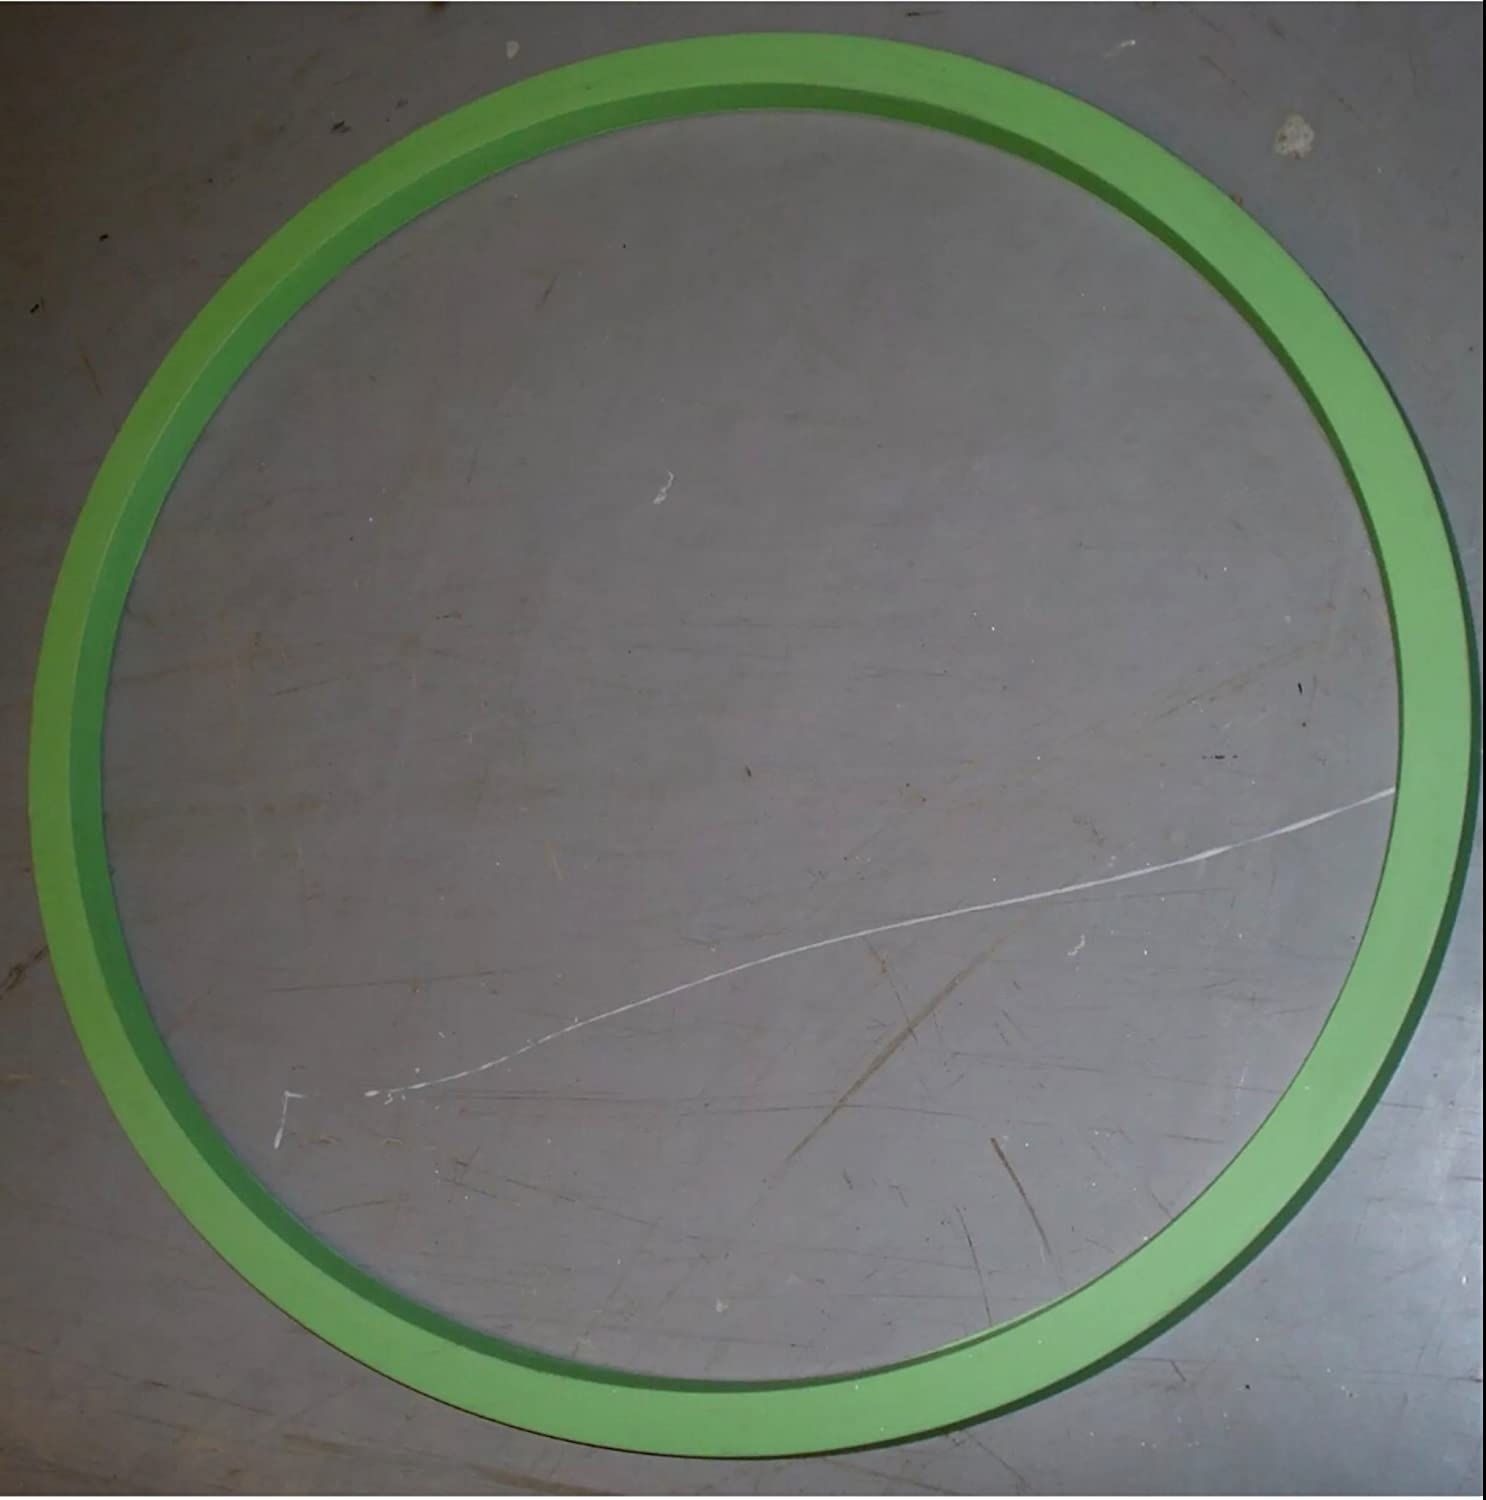 Still door gasket for Firbimatic, Union, Realstar dry cleaning machines 401879 #G15975 14-3/4